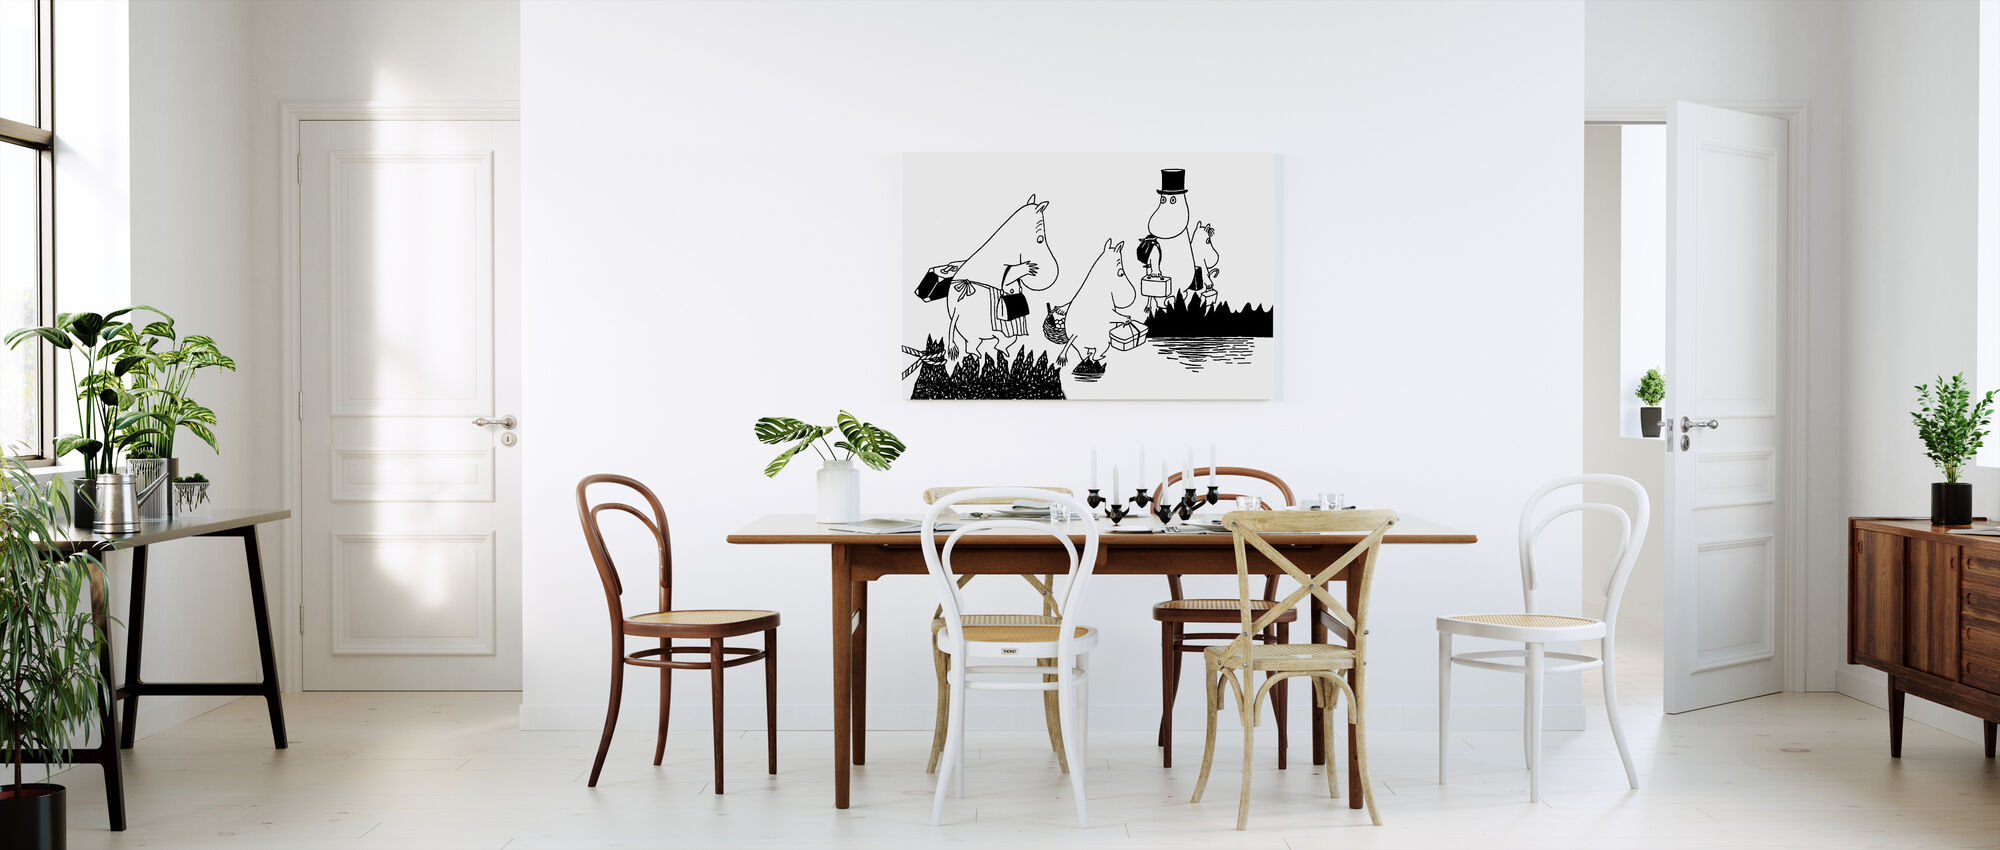 Moomin Family - Canvas print - Kitchen